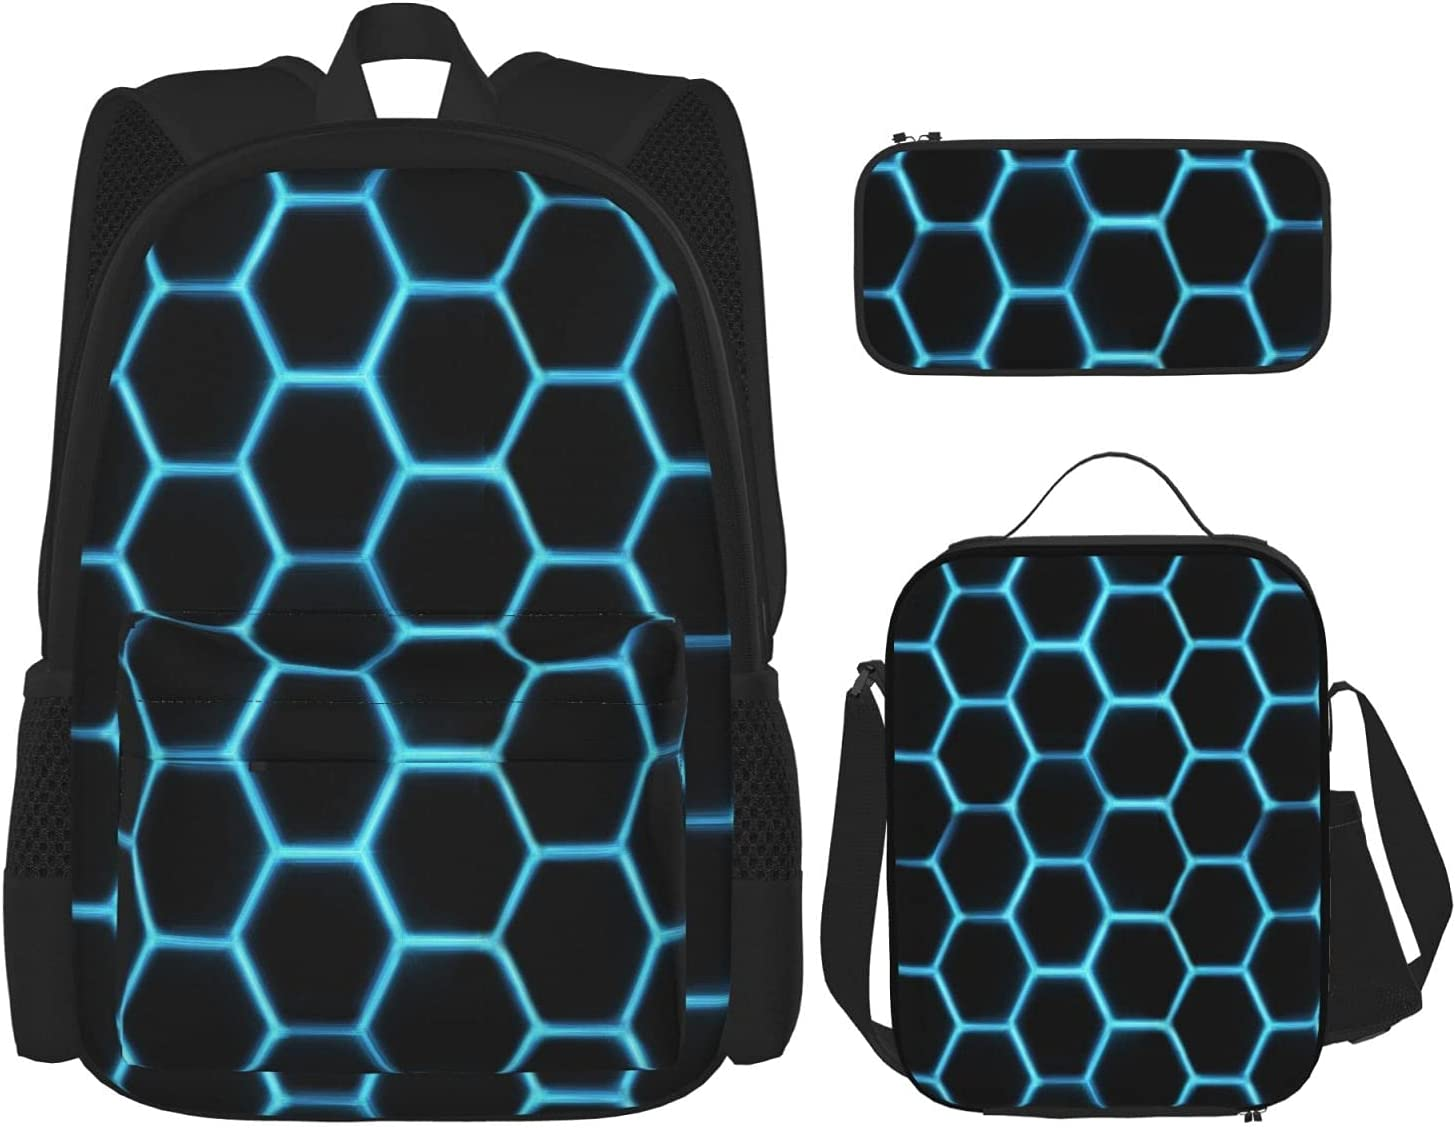 Cool Hexagon School Bag + Super beauty product restock quality top Ou Popular brand Combination Case Pencil Lunch